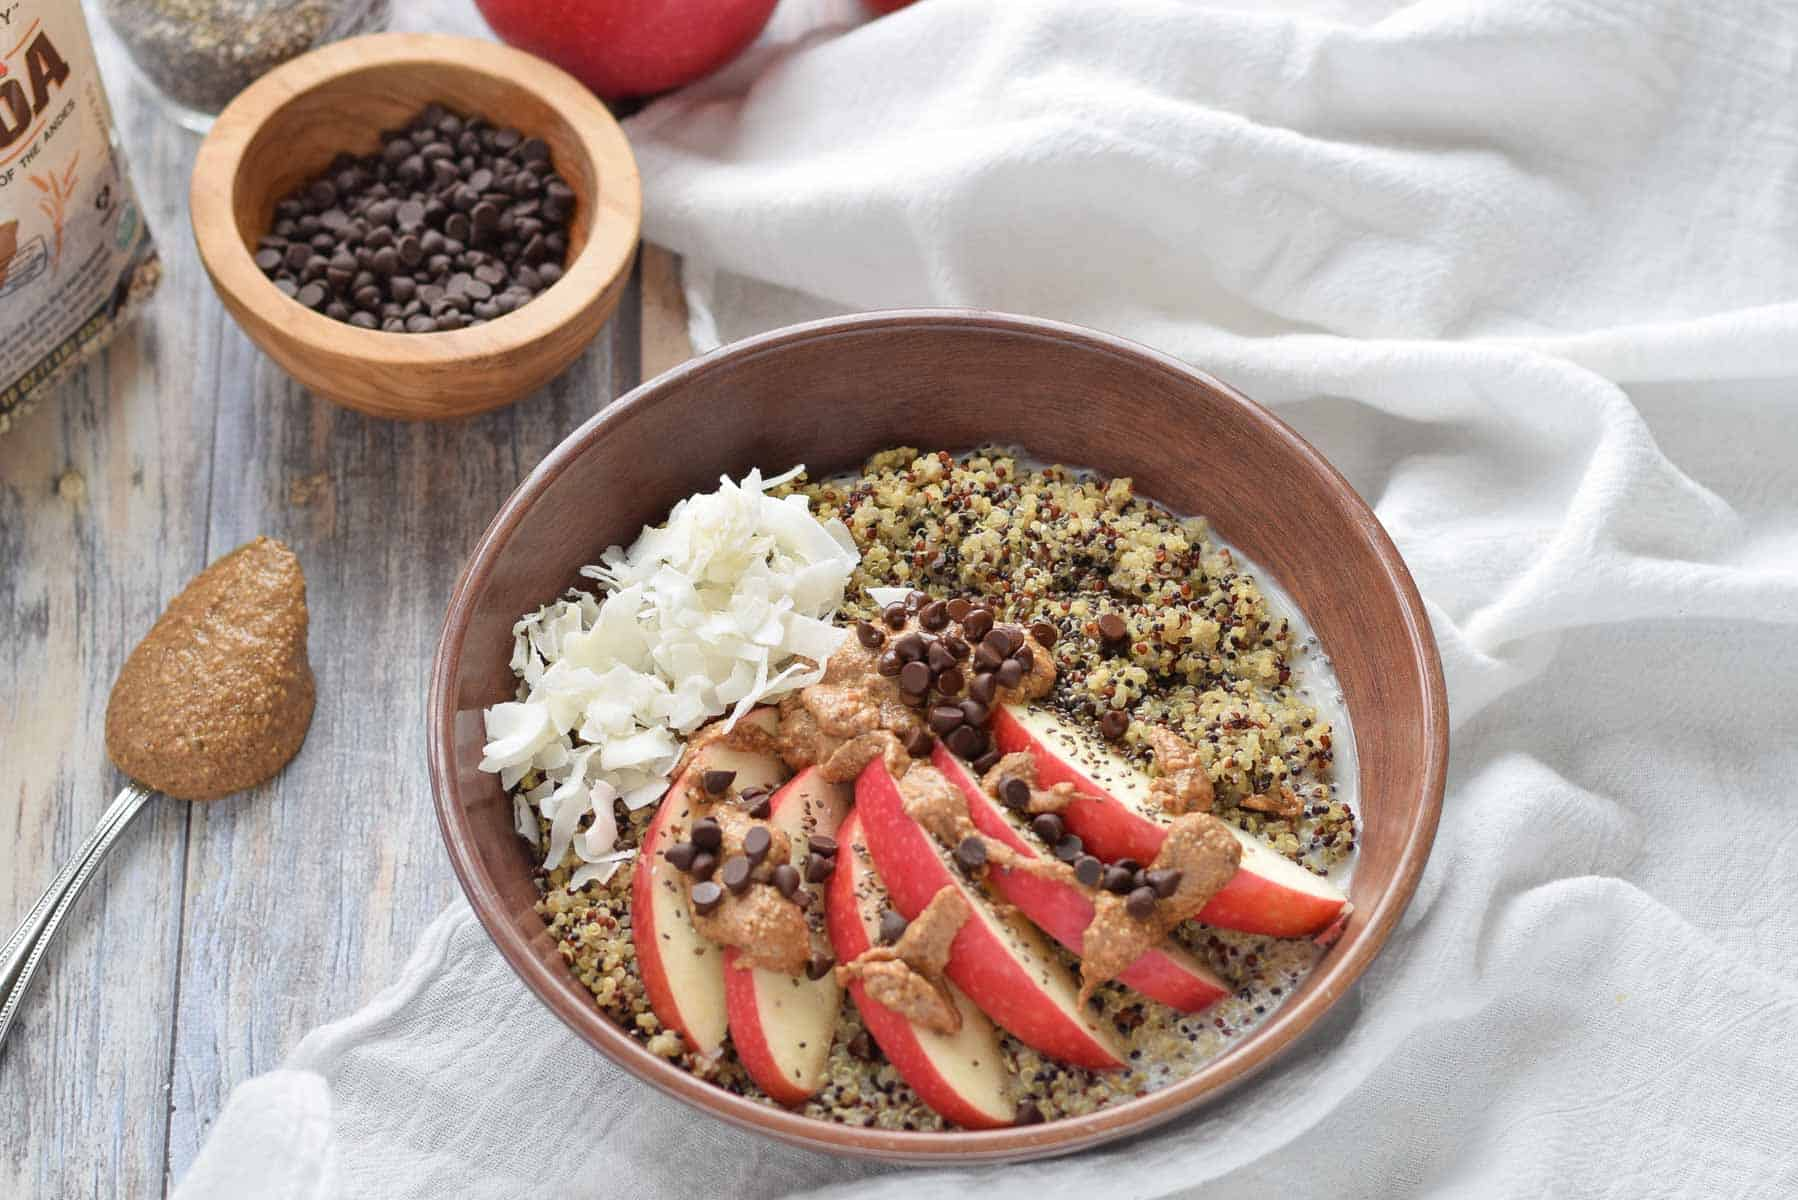 Quinoa Breakfast Bowl  with chocolate and apples.